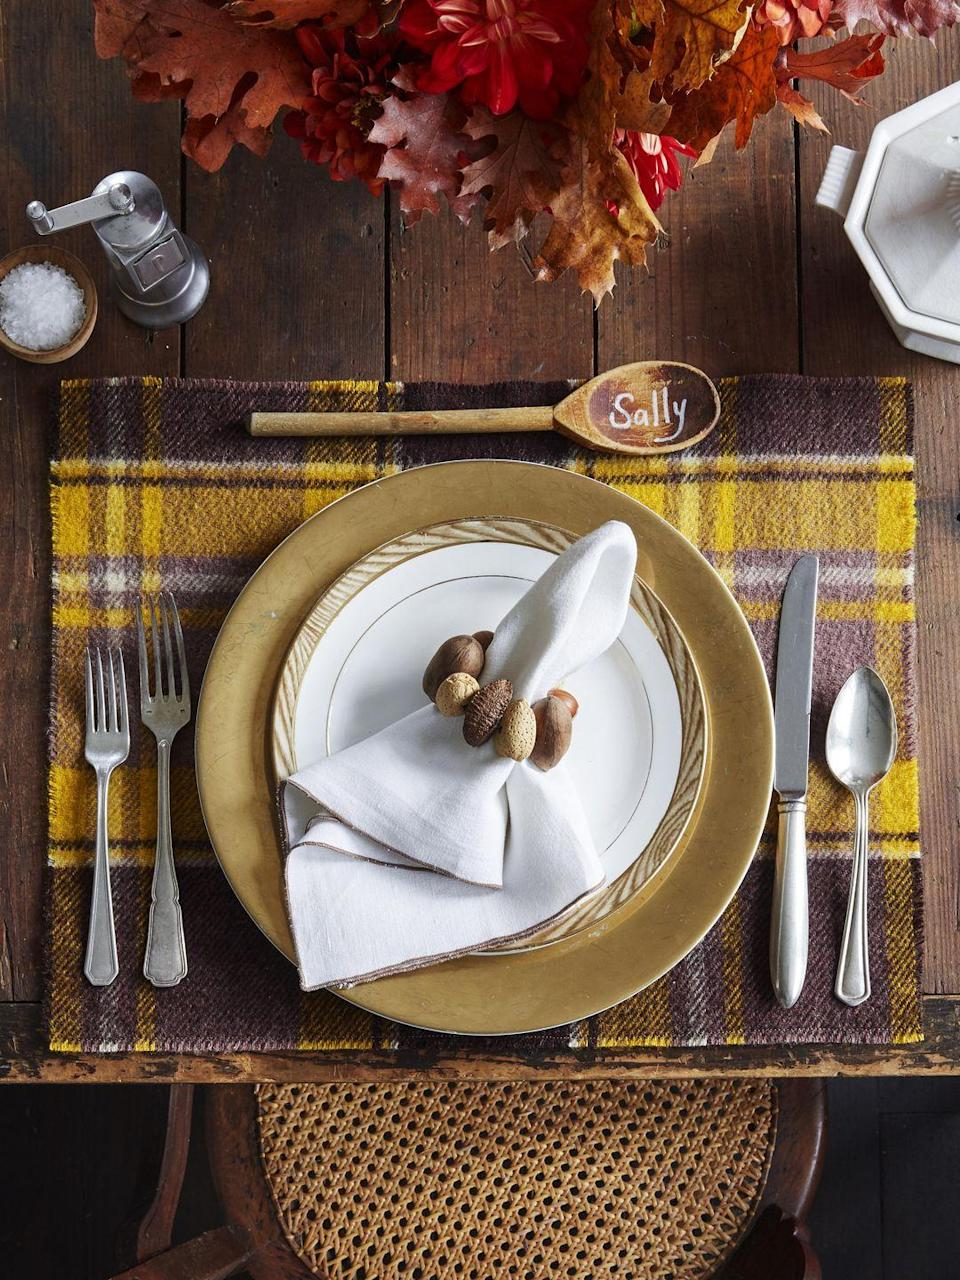 <p>The hues of fall are on display in this warm and cozy table setting. Start by cutting a vintage wool blanket into placemats. Drill holes in nuts and thread with wire or twine to create napkin rings. Finally pen guests names on new or vintage wooden spoons to create sweet place cards.</p>